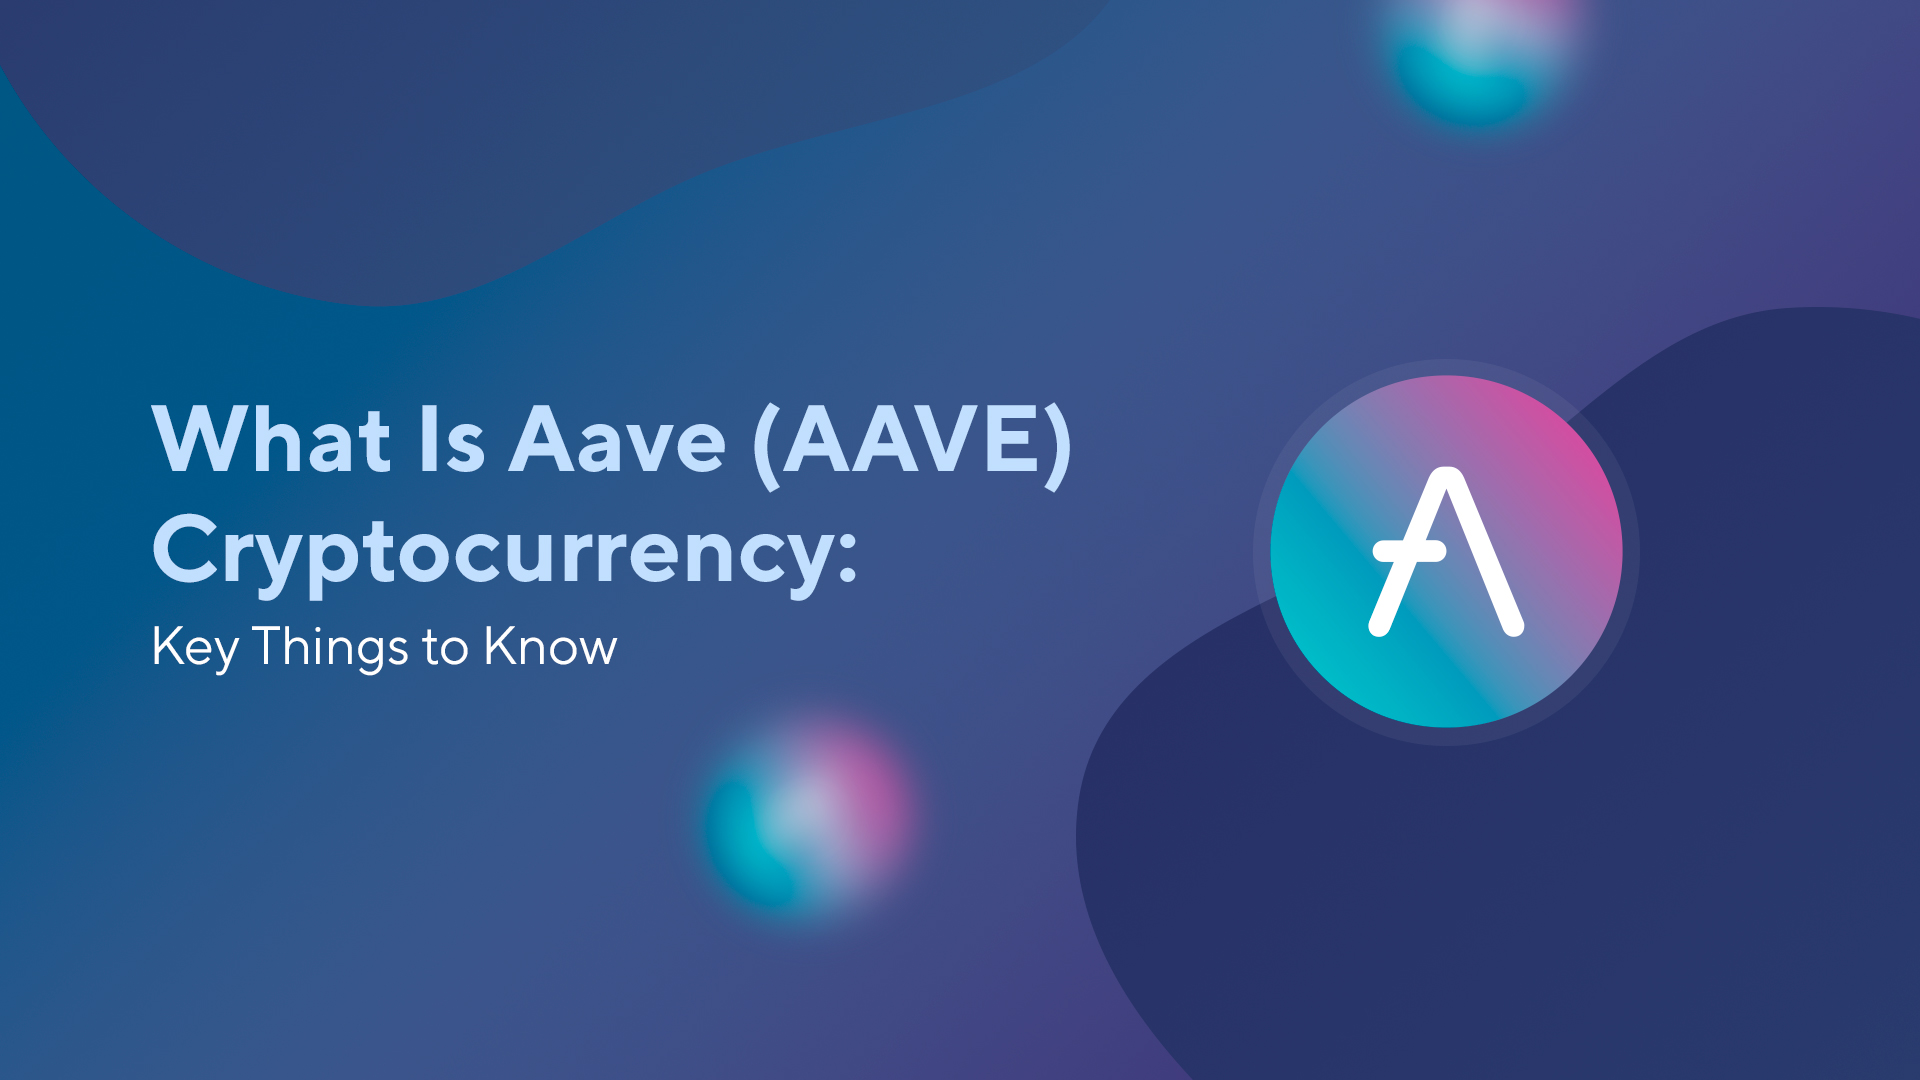 What Is Aave (AAVE) Cryptocurrency: Key Things to Know